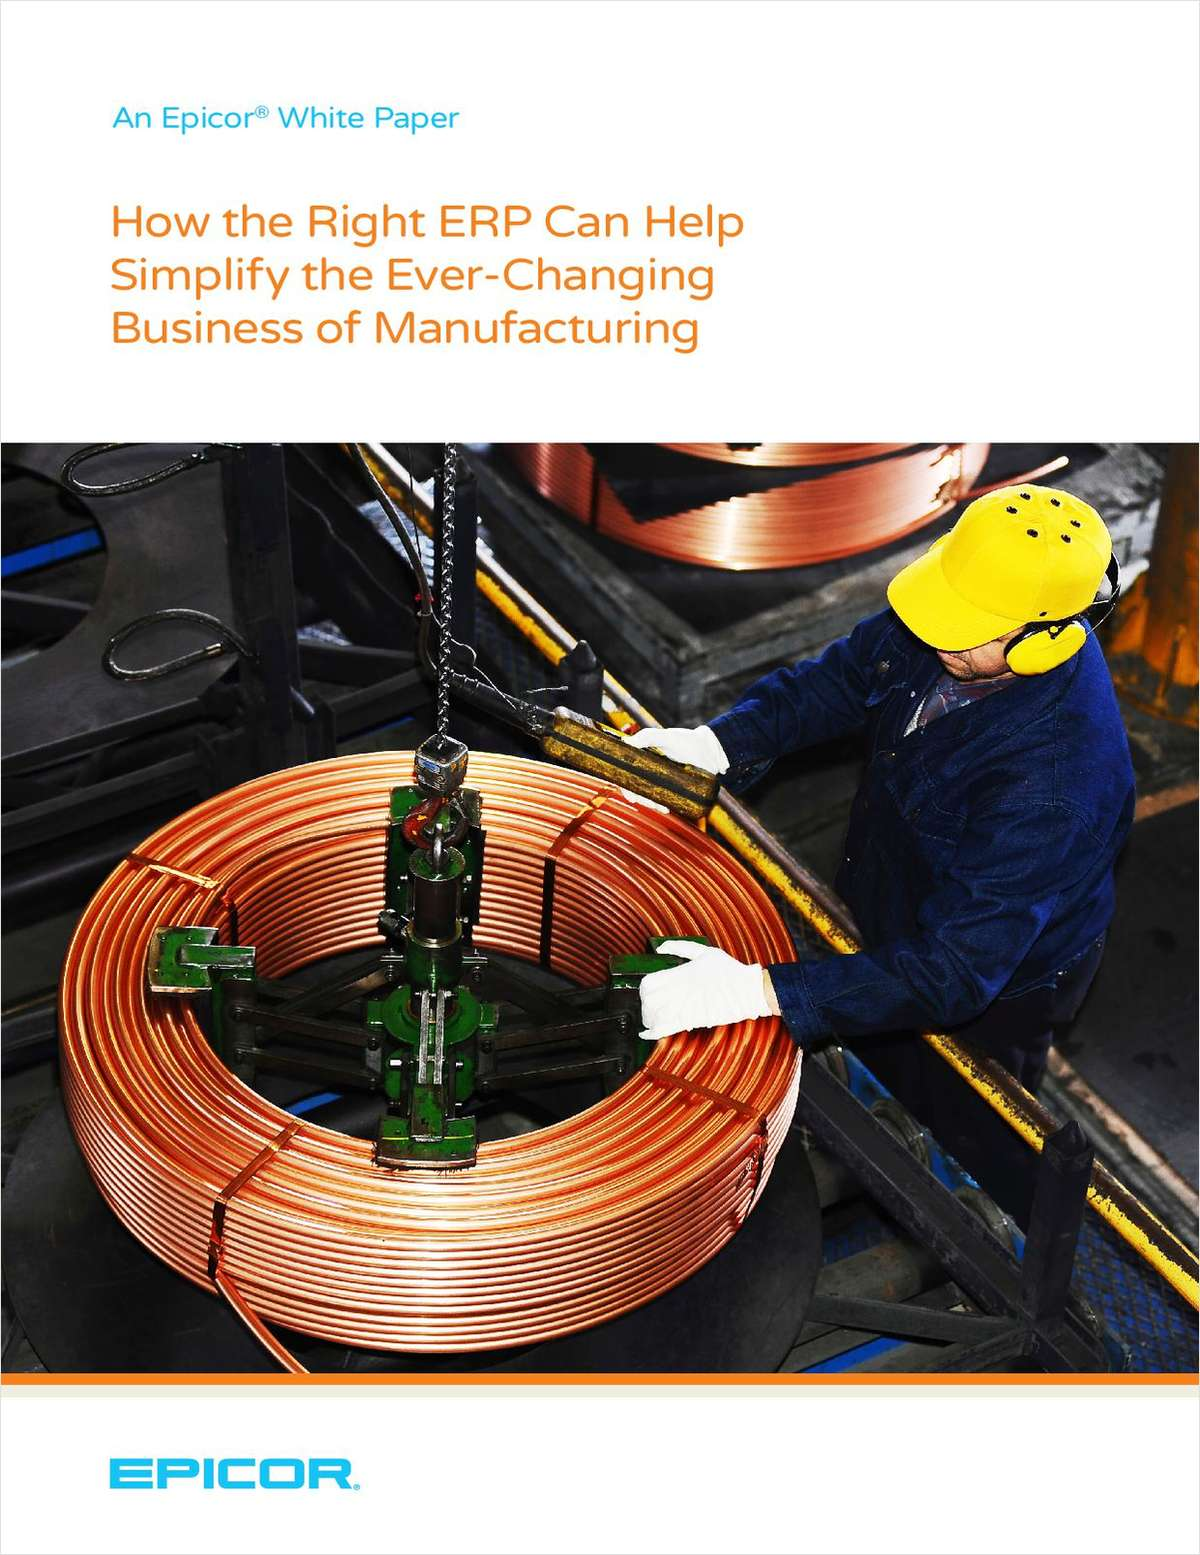 How the Right ERP Can Help Simplify the Ever-Changing Business of Manufacturing